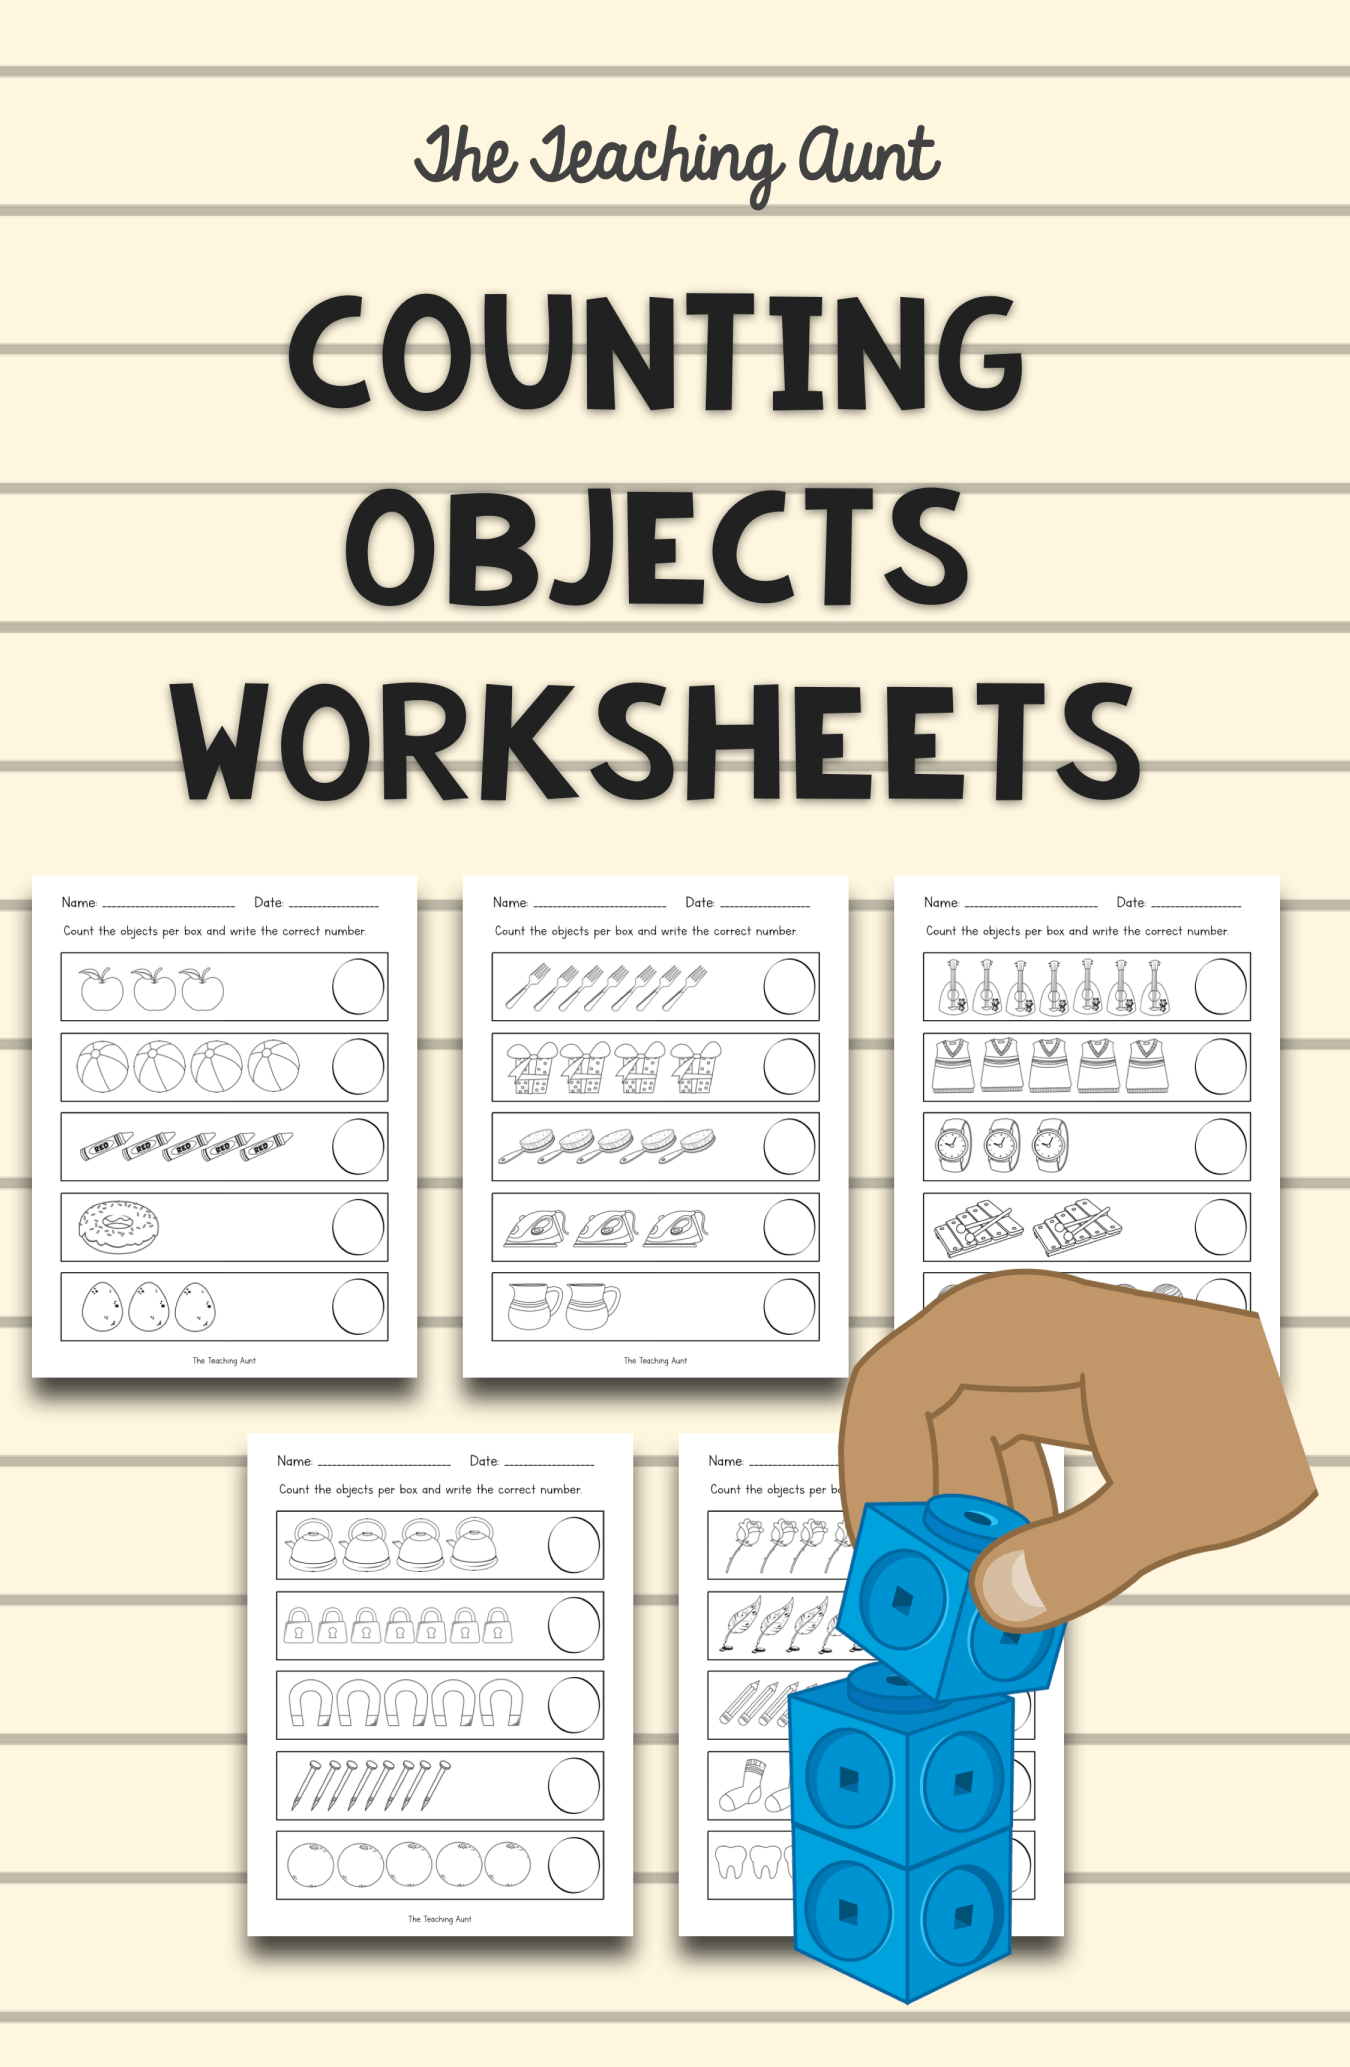 Counting Objects Worksheets Con Imagenes